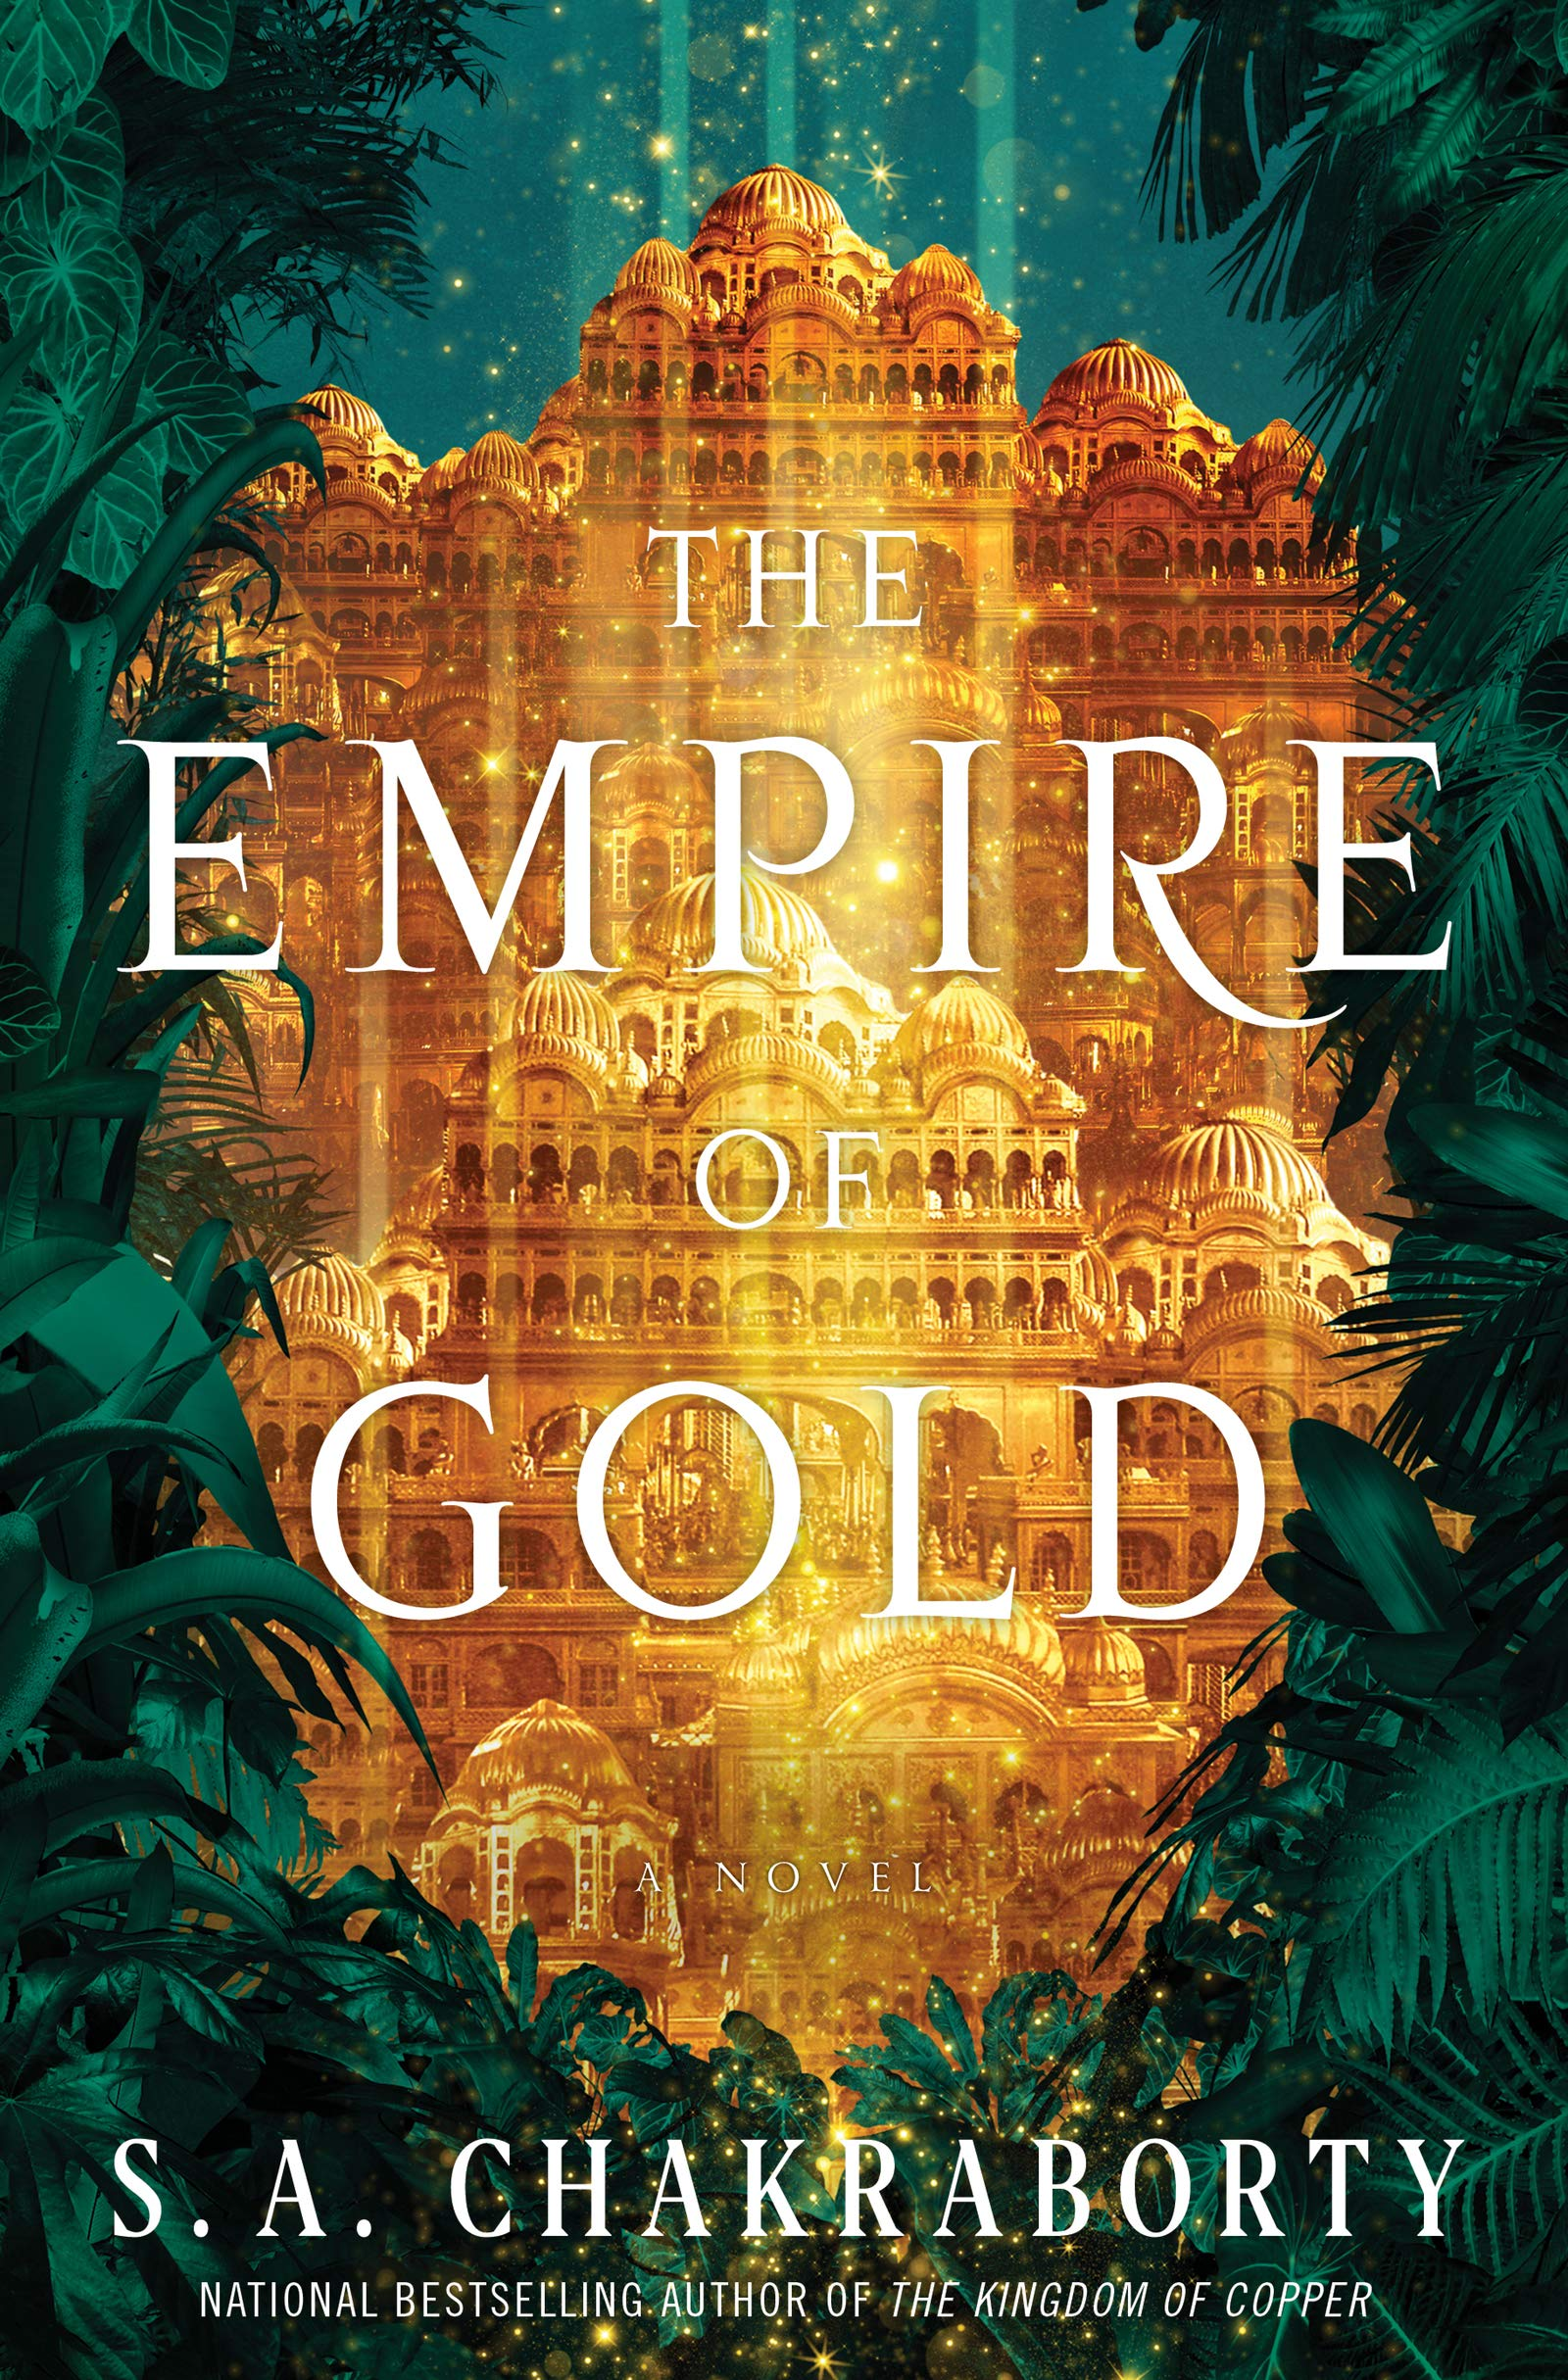 Amazon.com: The Empire of Gold: A Novel (The Daevabad Trilogy)  (9780062678164): Chakraborty, S. A: Books